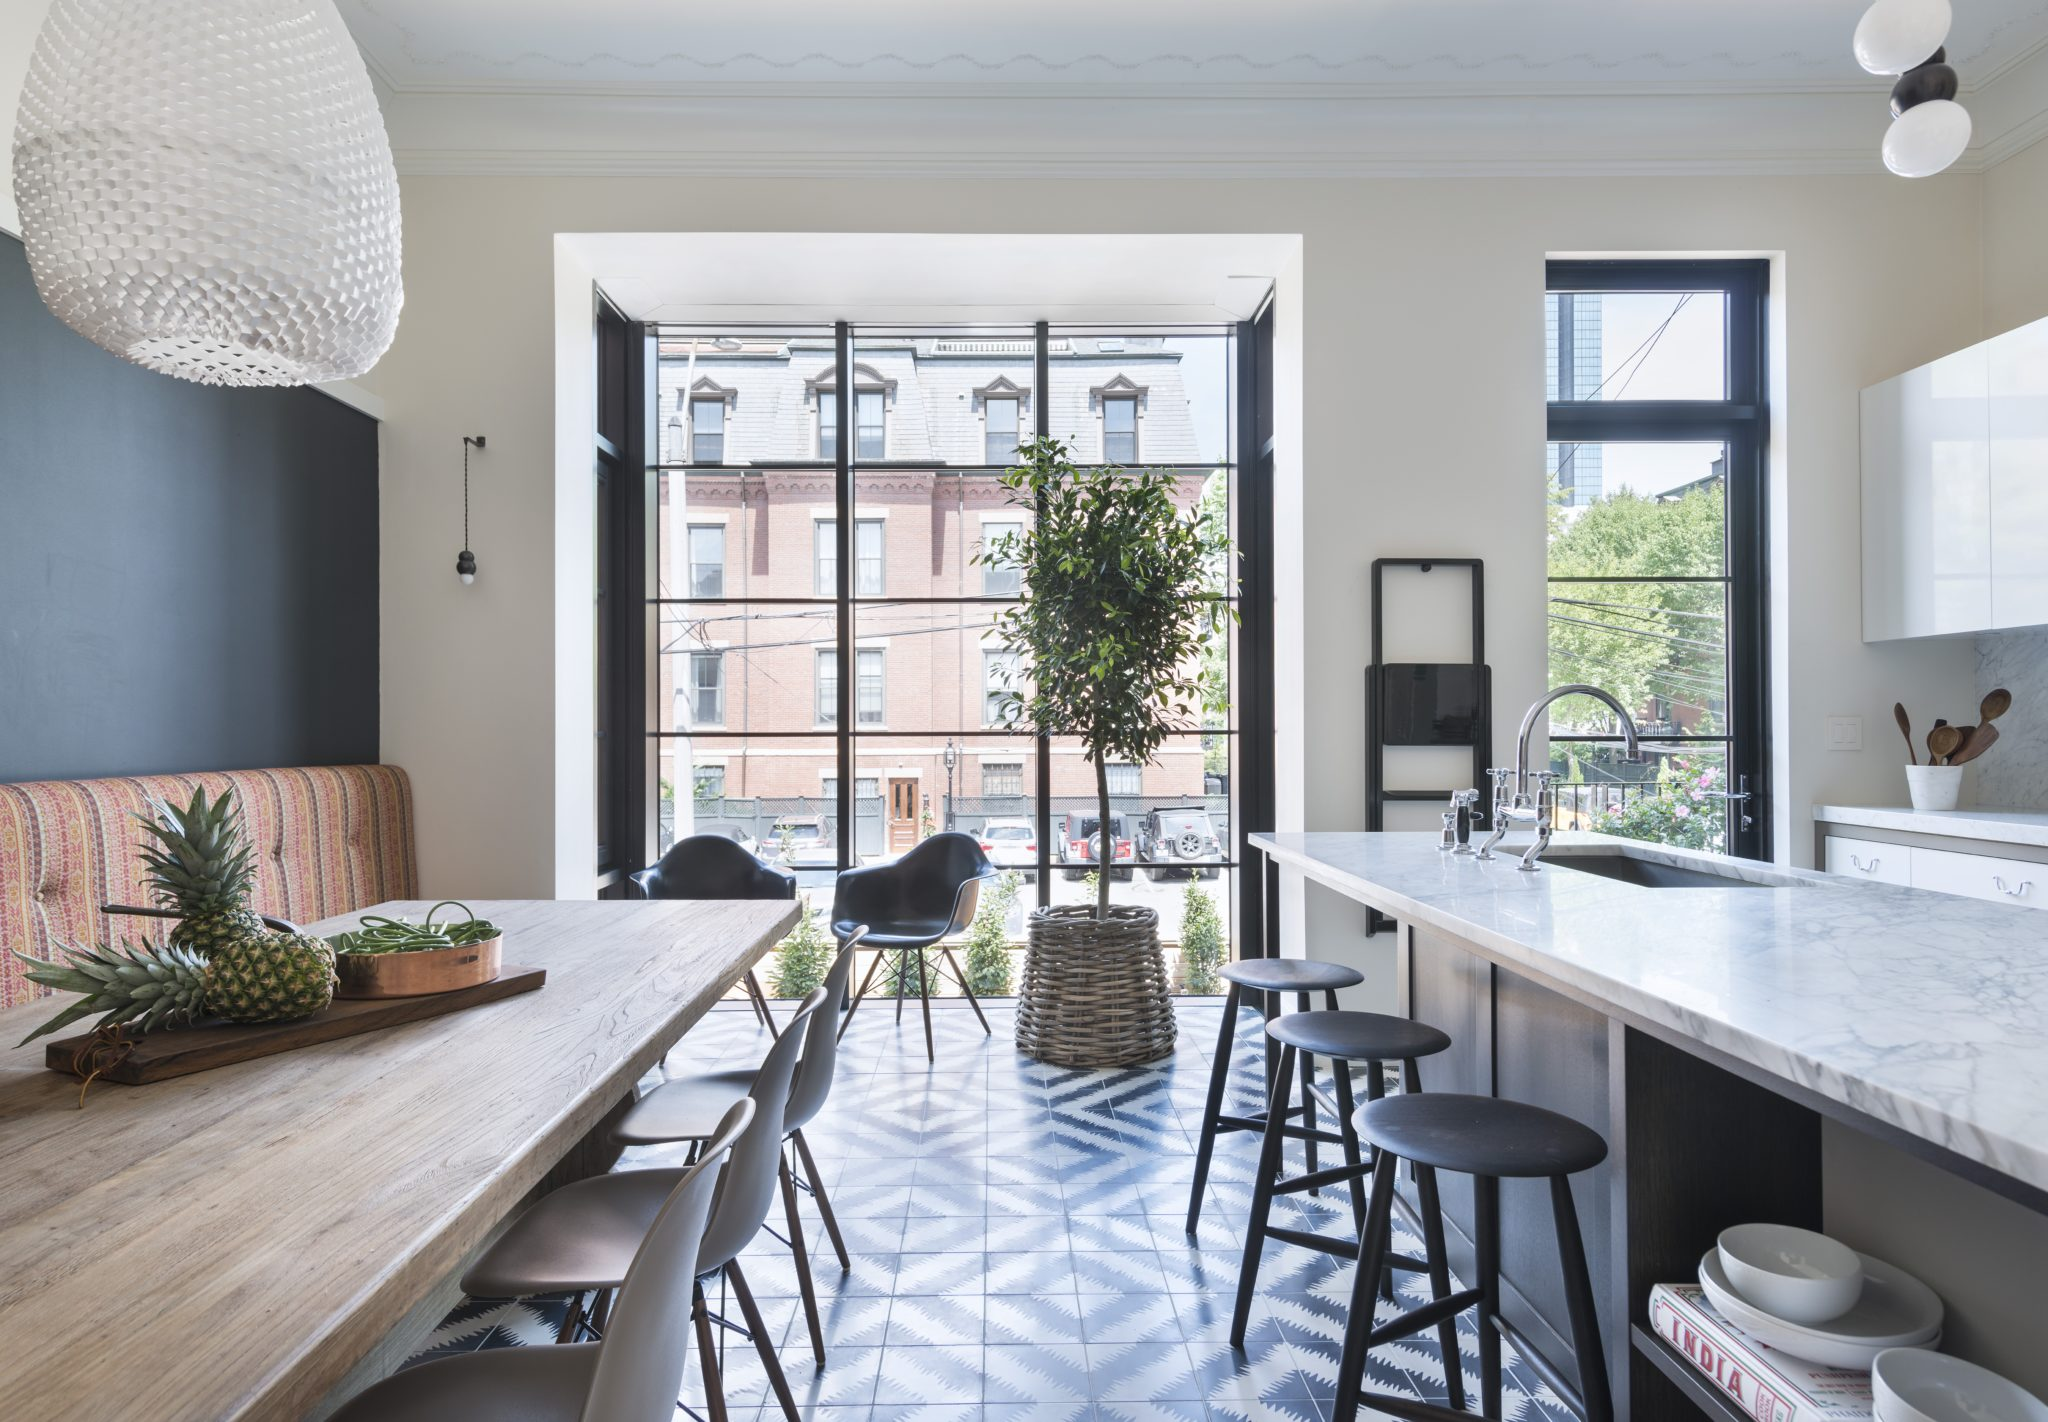 Urban townhouse kitchen with steel curtain window and cement floor by Koo de Kir Architectural Interiors